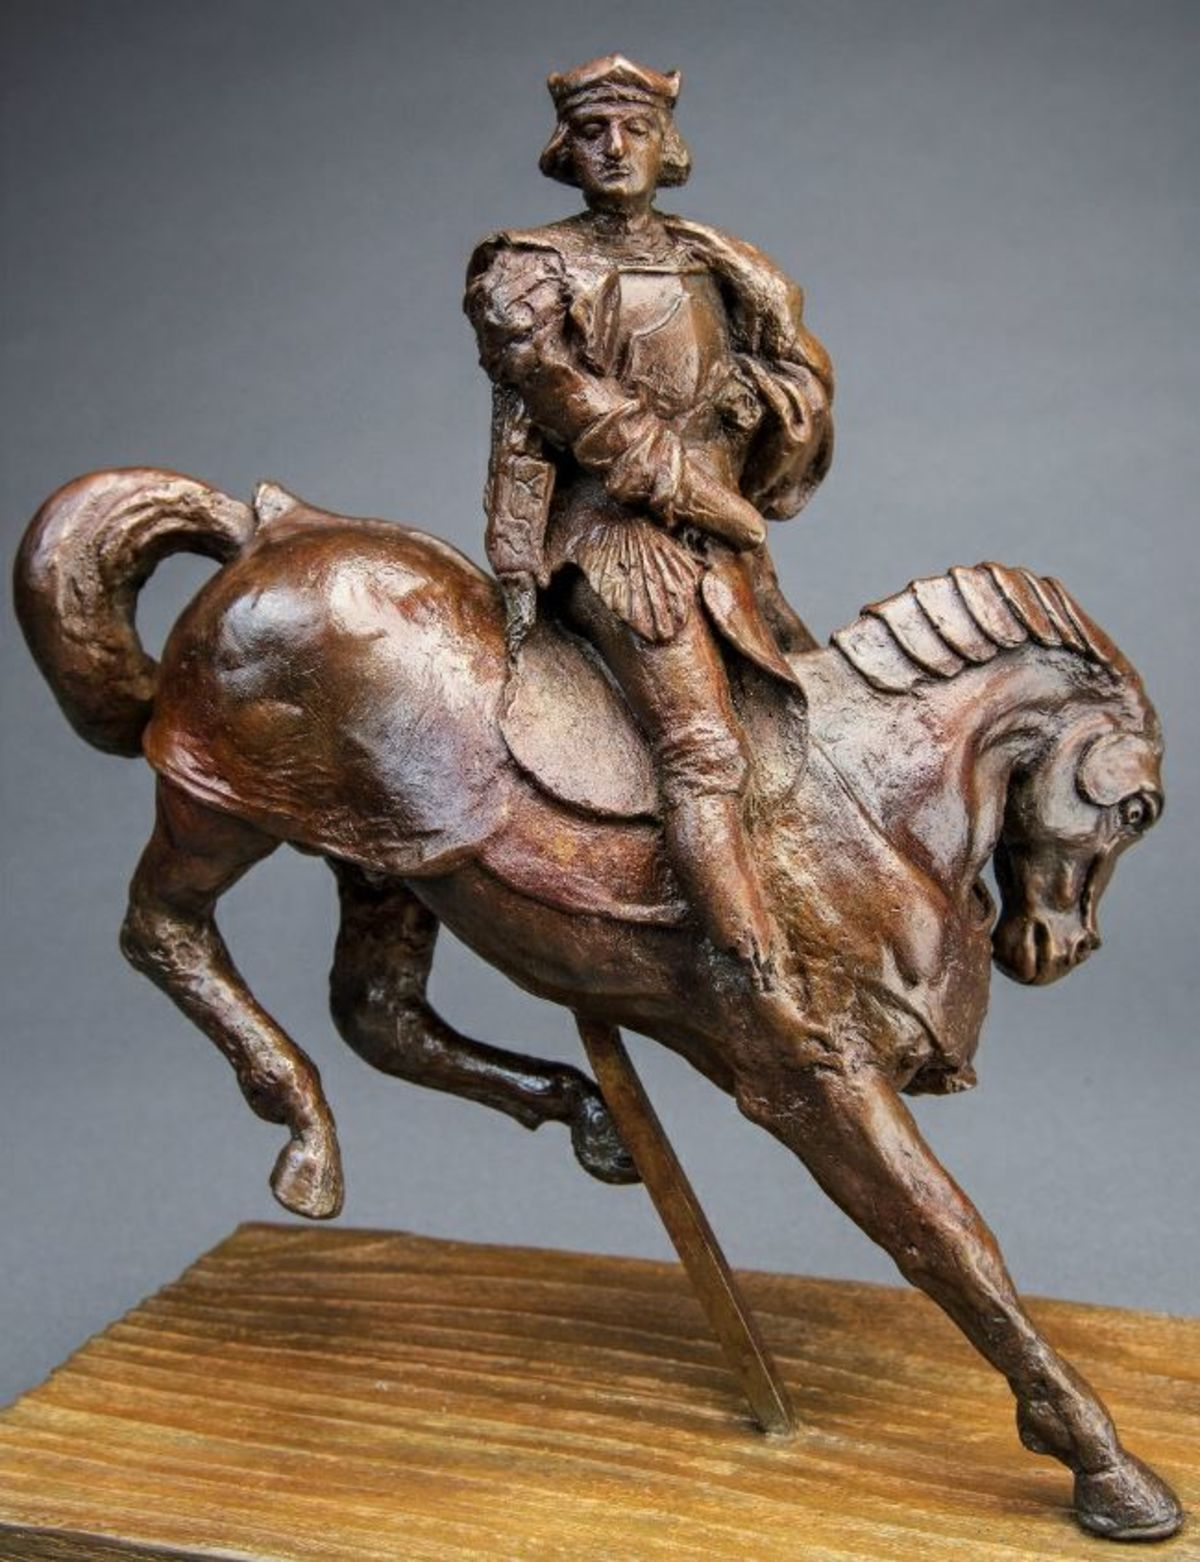 Da Vinci-Linked 'Horse and Rider' Flops at Auction in New York